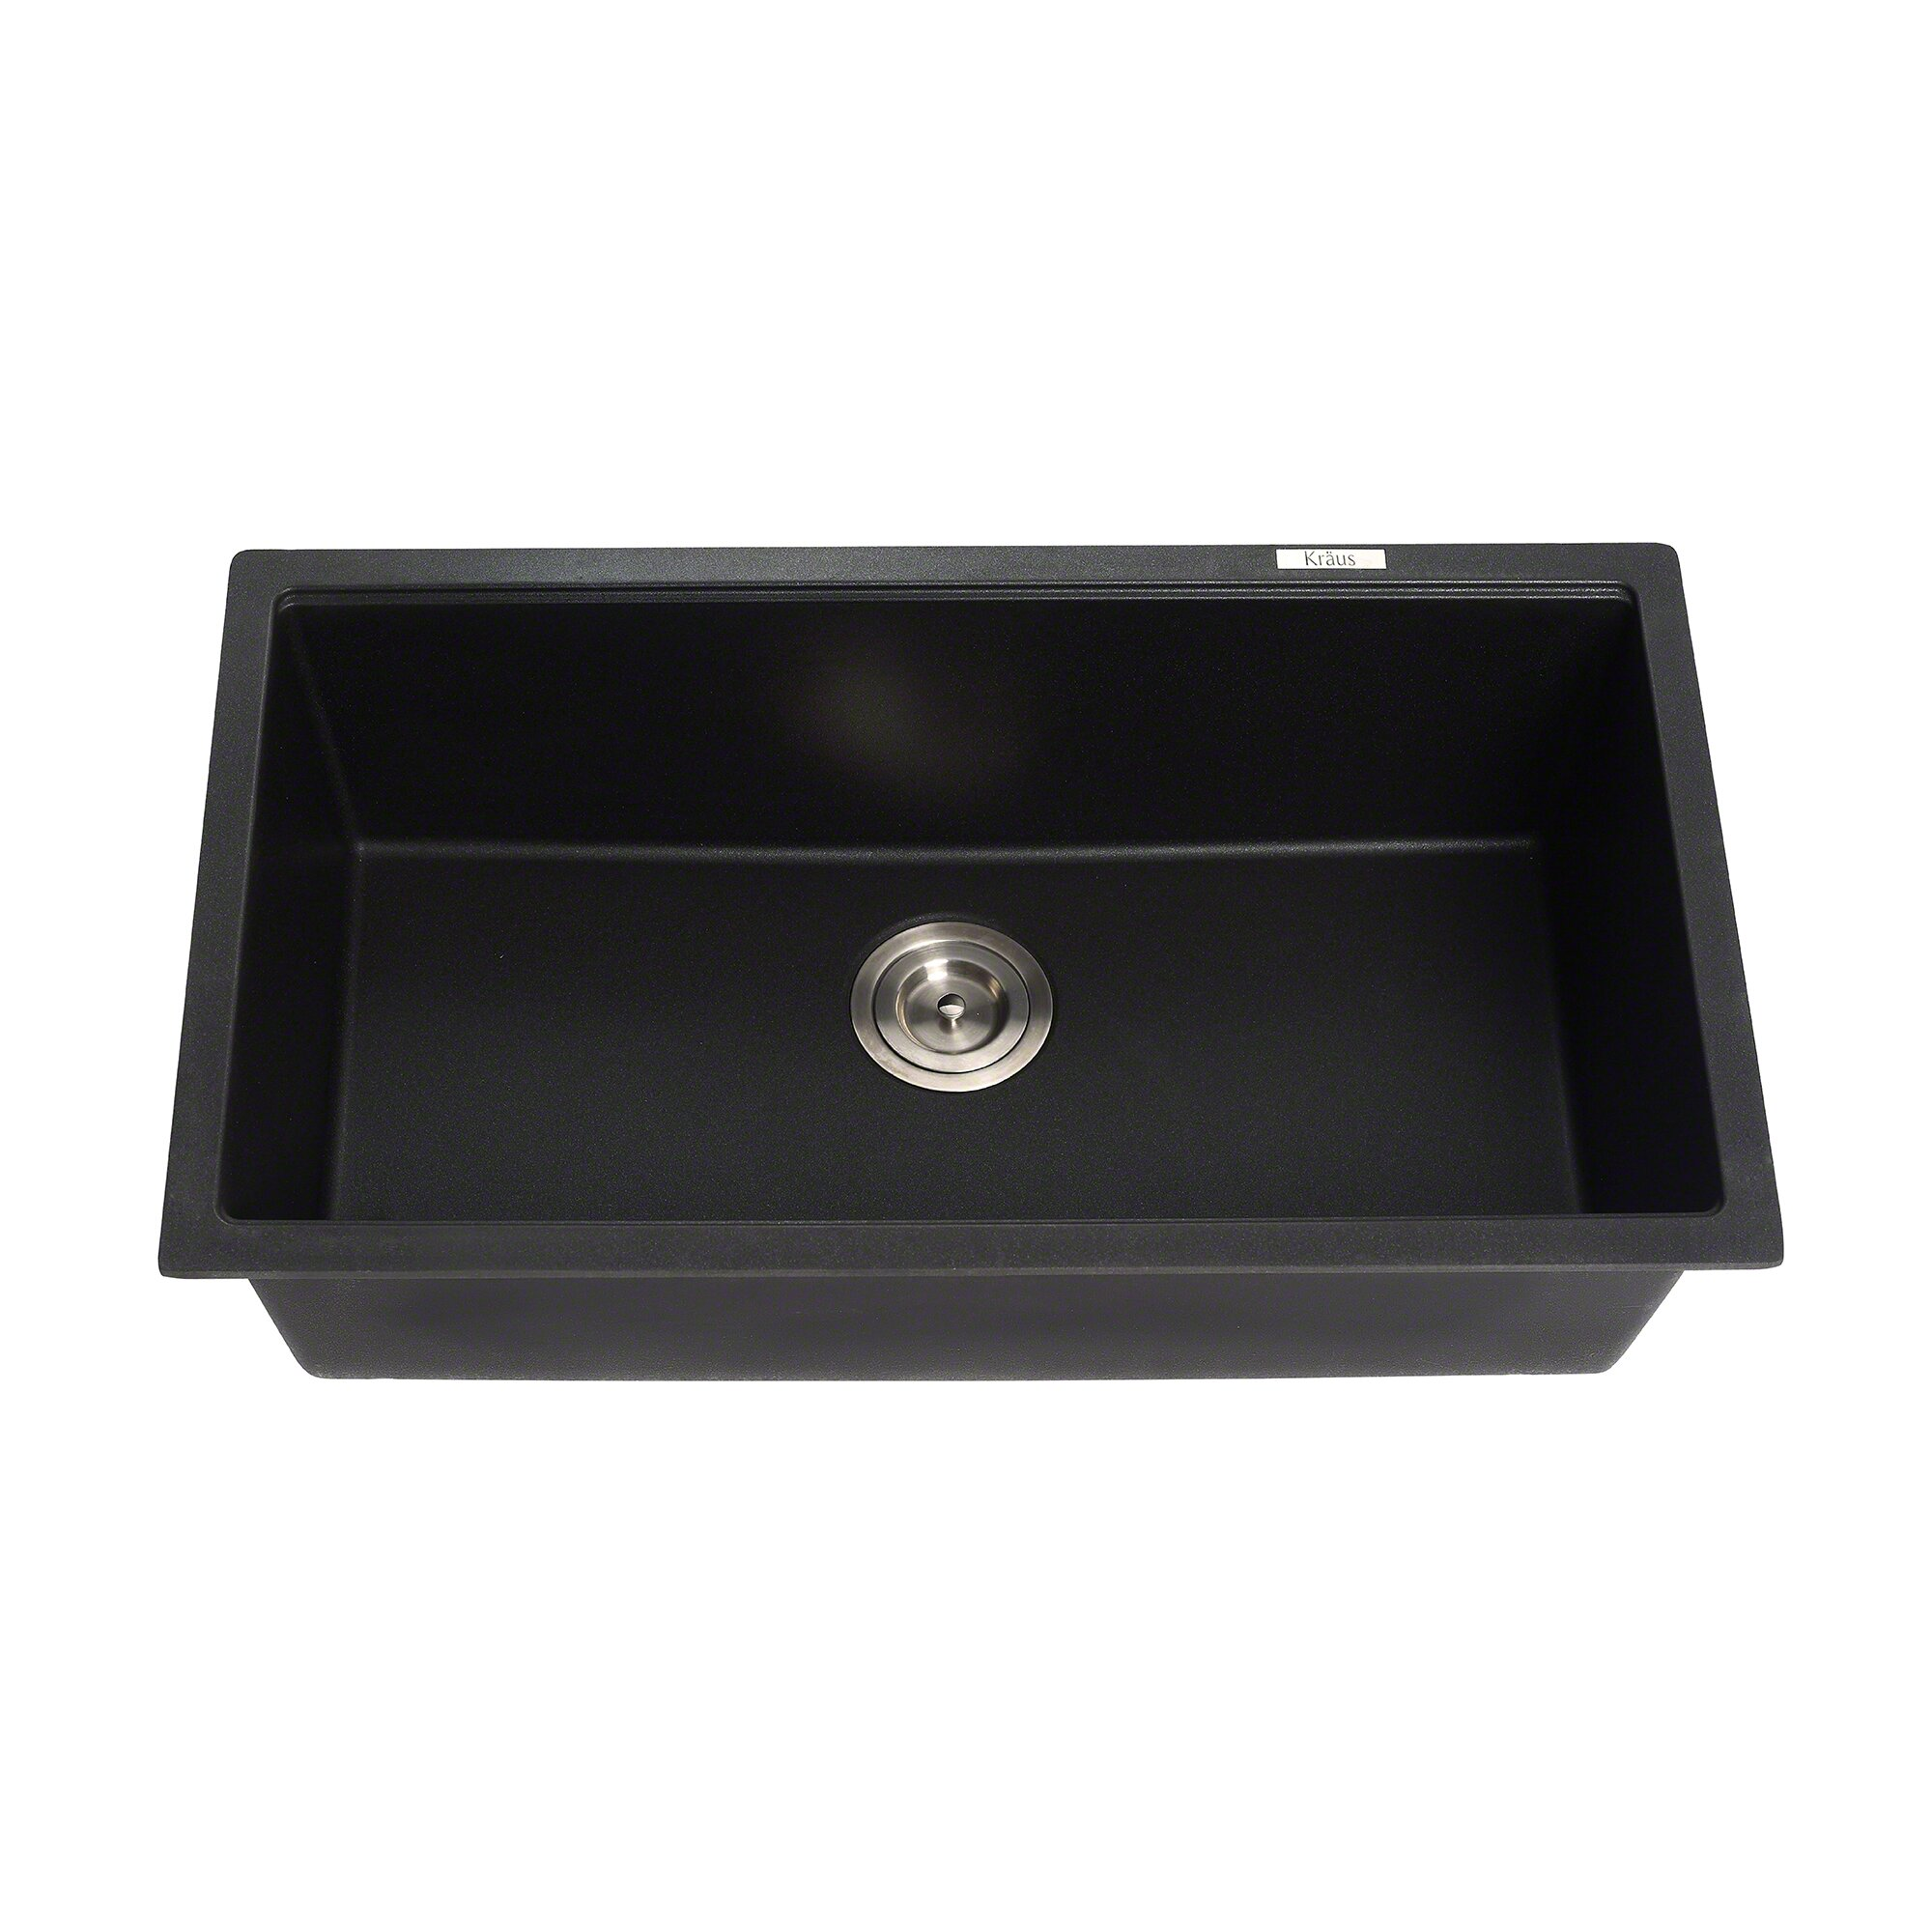 Granite Undermount Kitchen Sinks Kraus 31 X 1709 Granite Undermount Kitchen Sink Reviews Wayfair